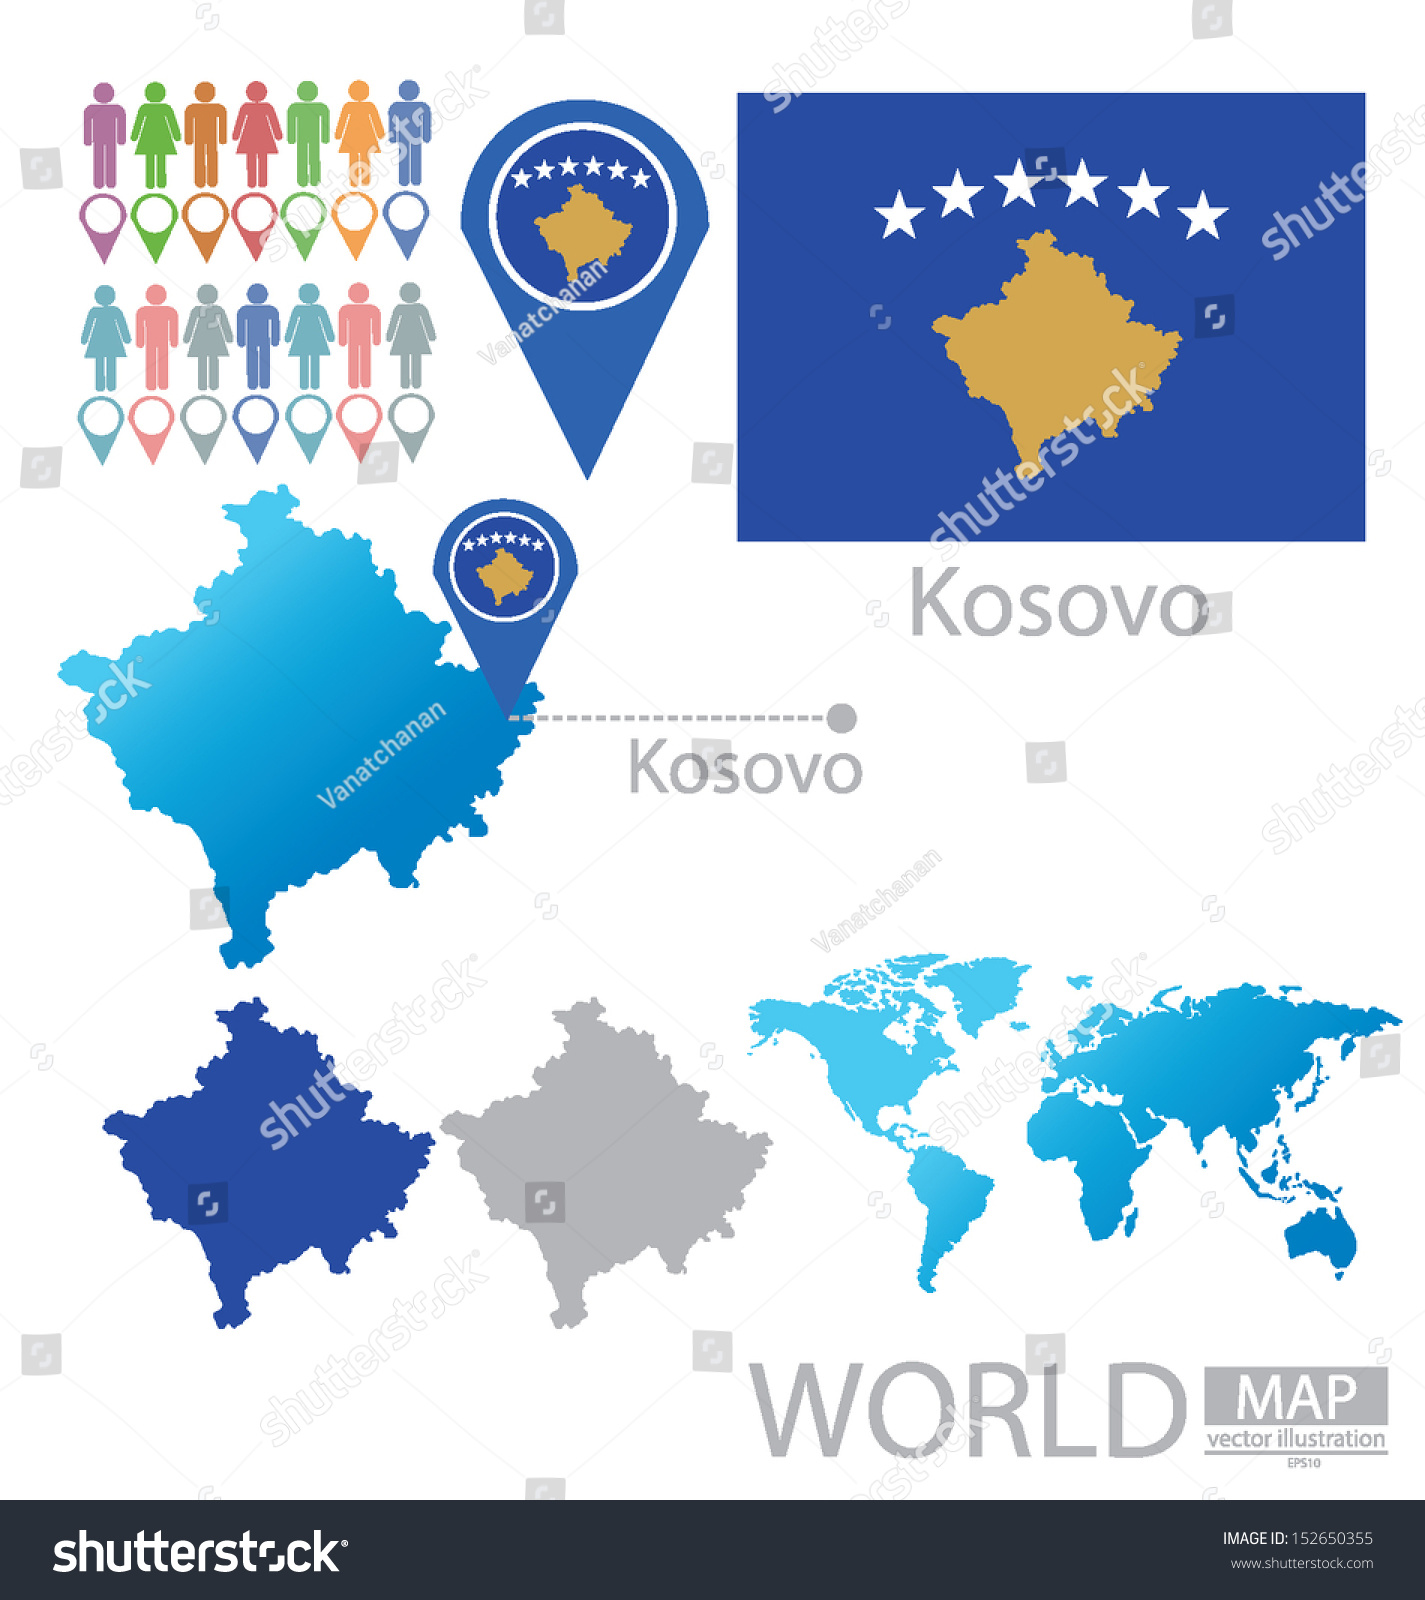 Republic kosovo flag world map vector stock vector 152650355 republic kosovo flag world map vector stock vector 152650355 shutterstock gumiabroncs Images